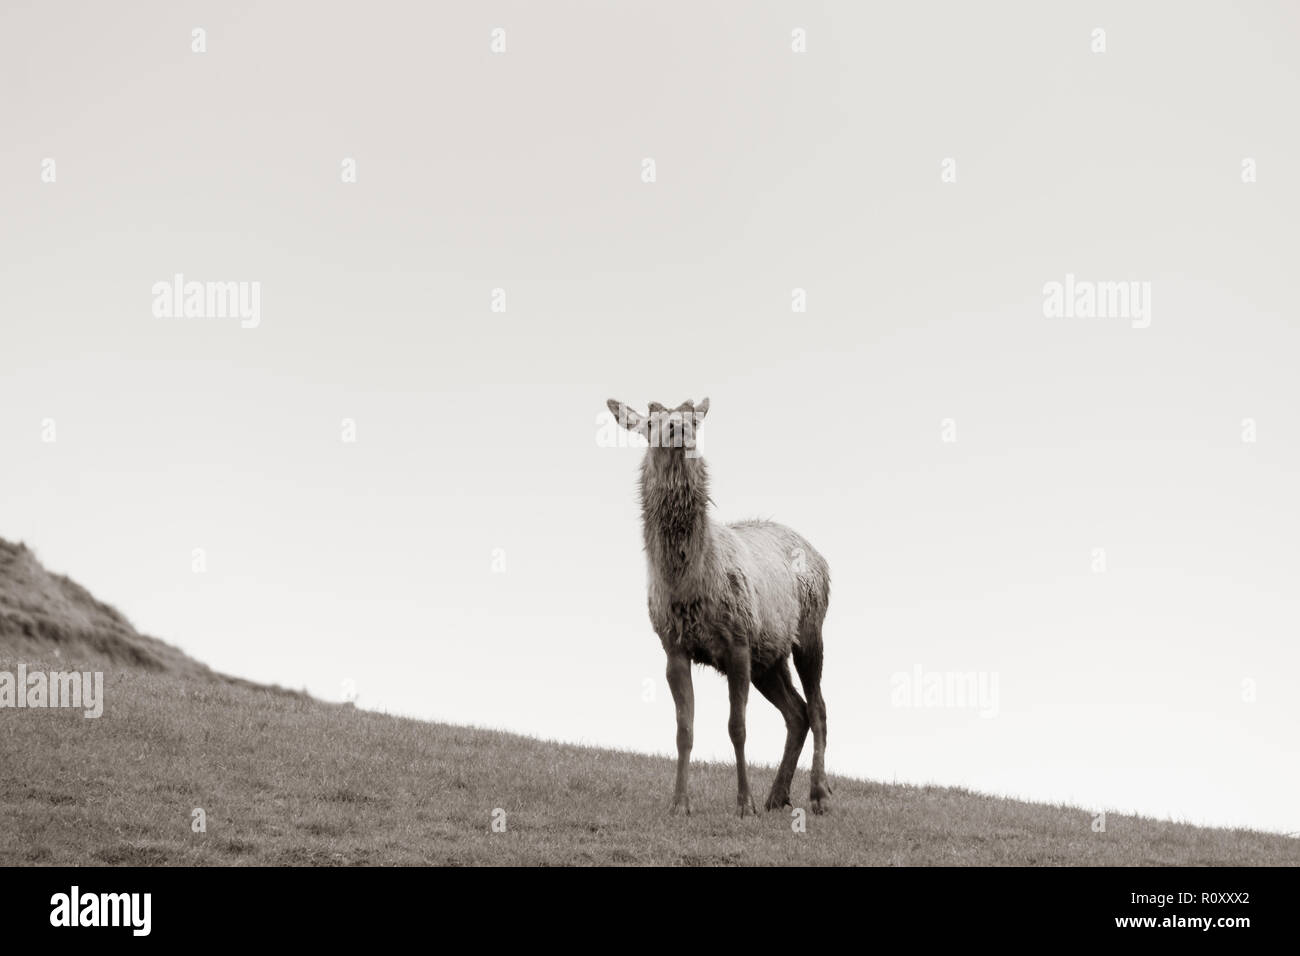 Deer farming in New Zealand, one red deer stands head raised and alert, sepia tones. - Stock Image